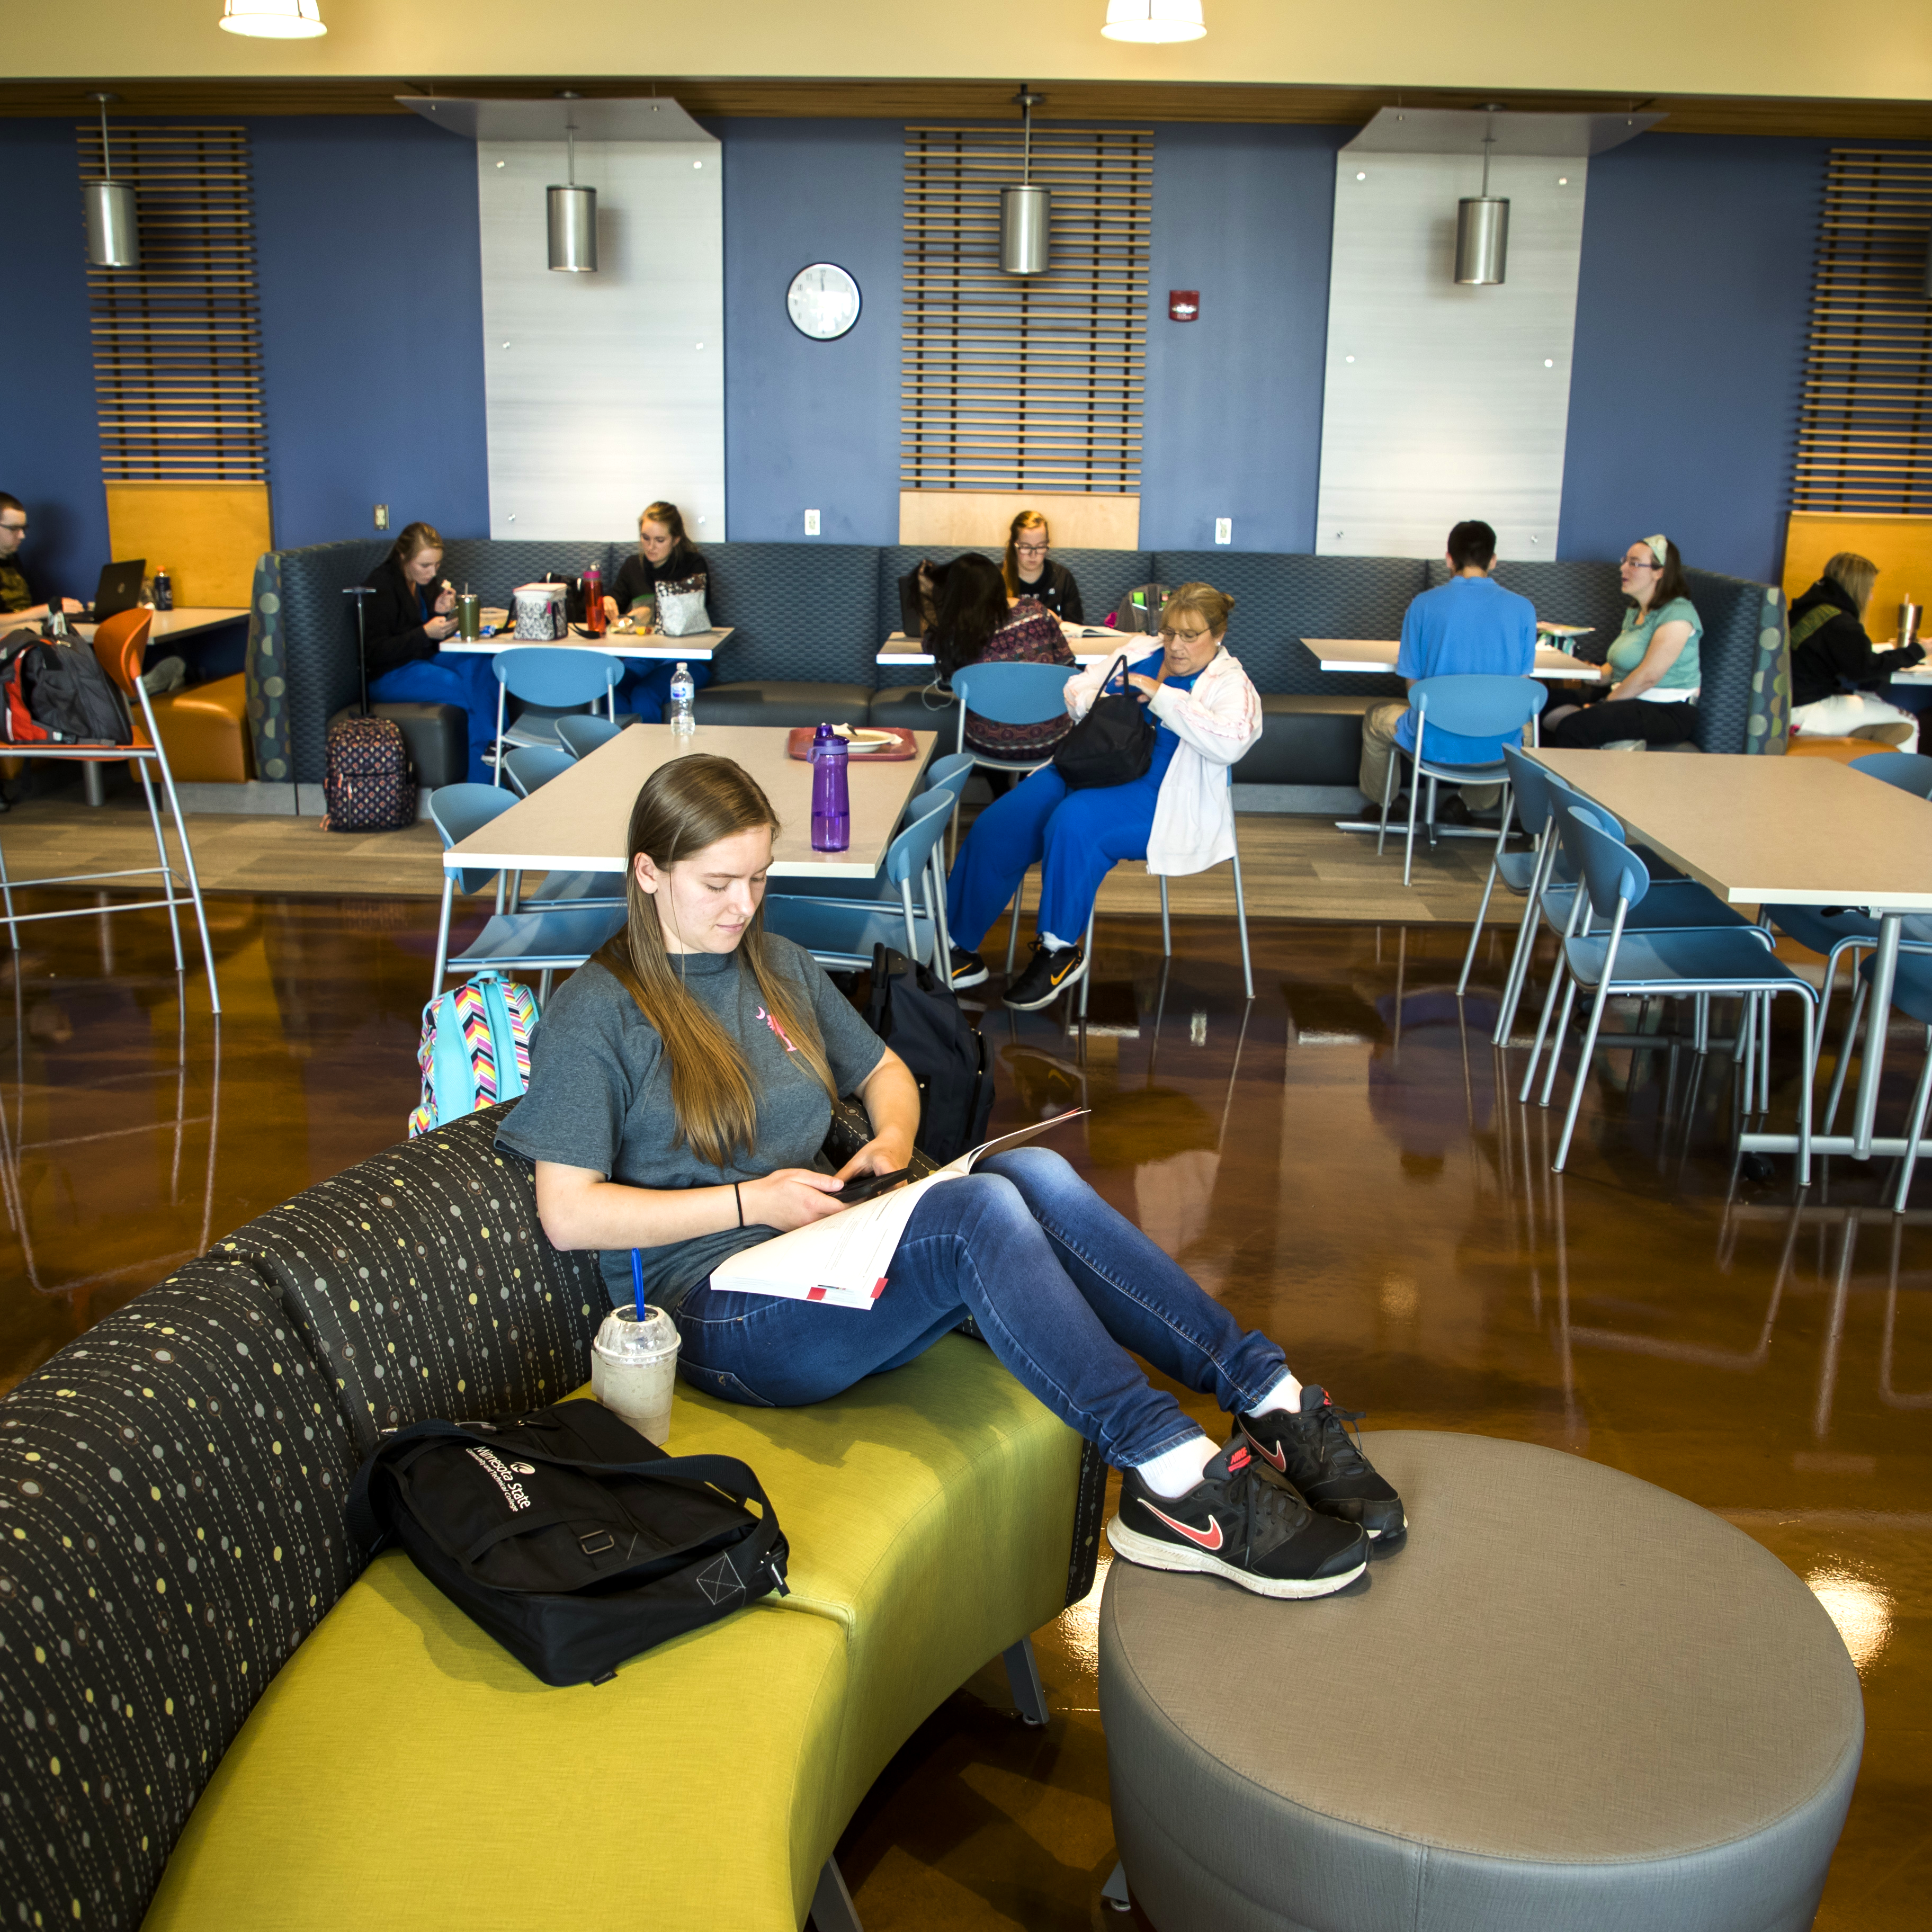 Image of a student relaxing and studying in the WITC-New Richmond commons area